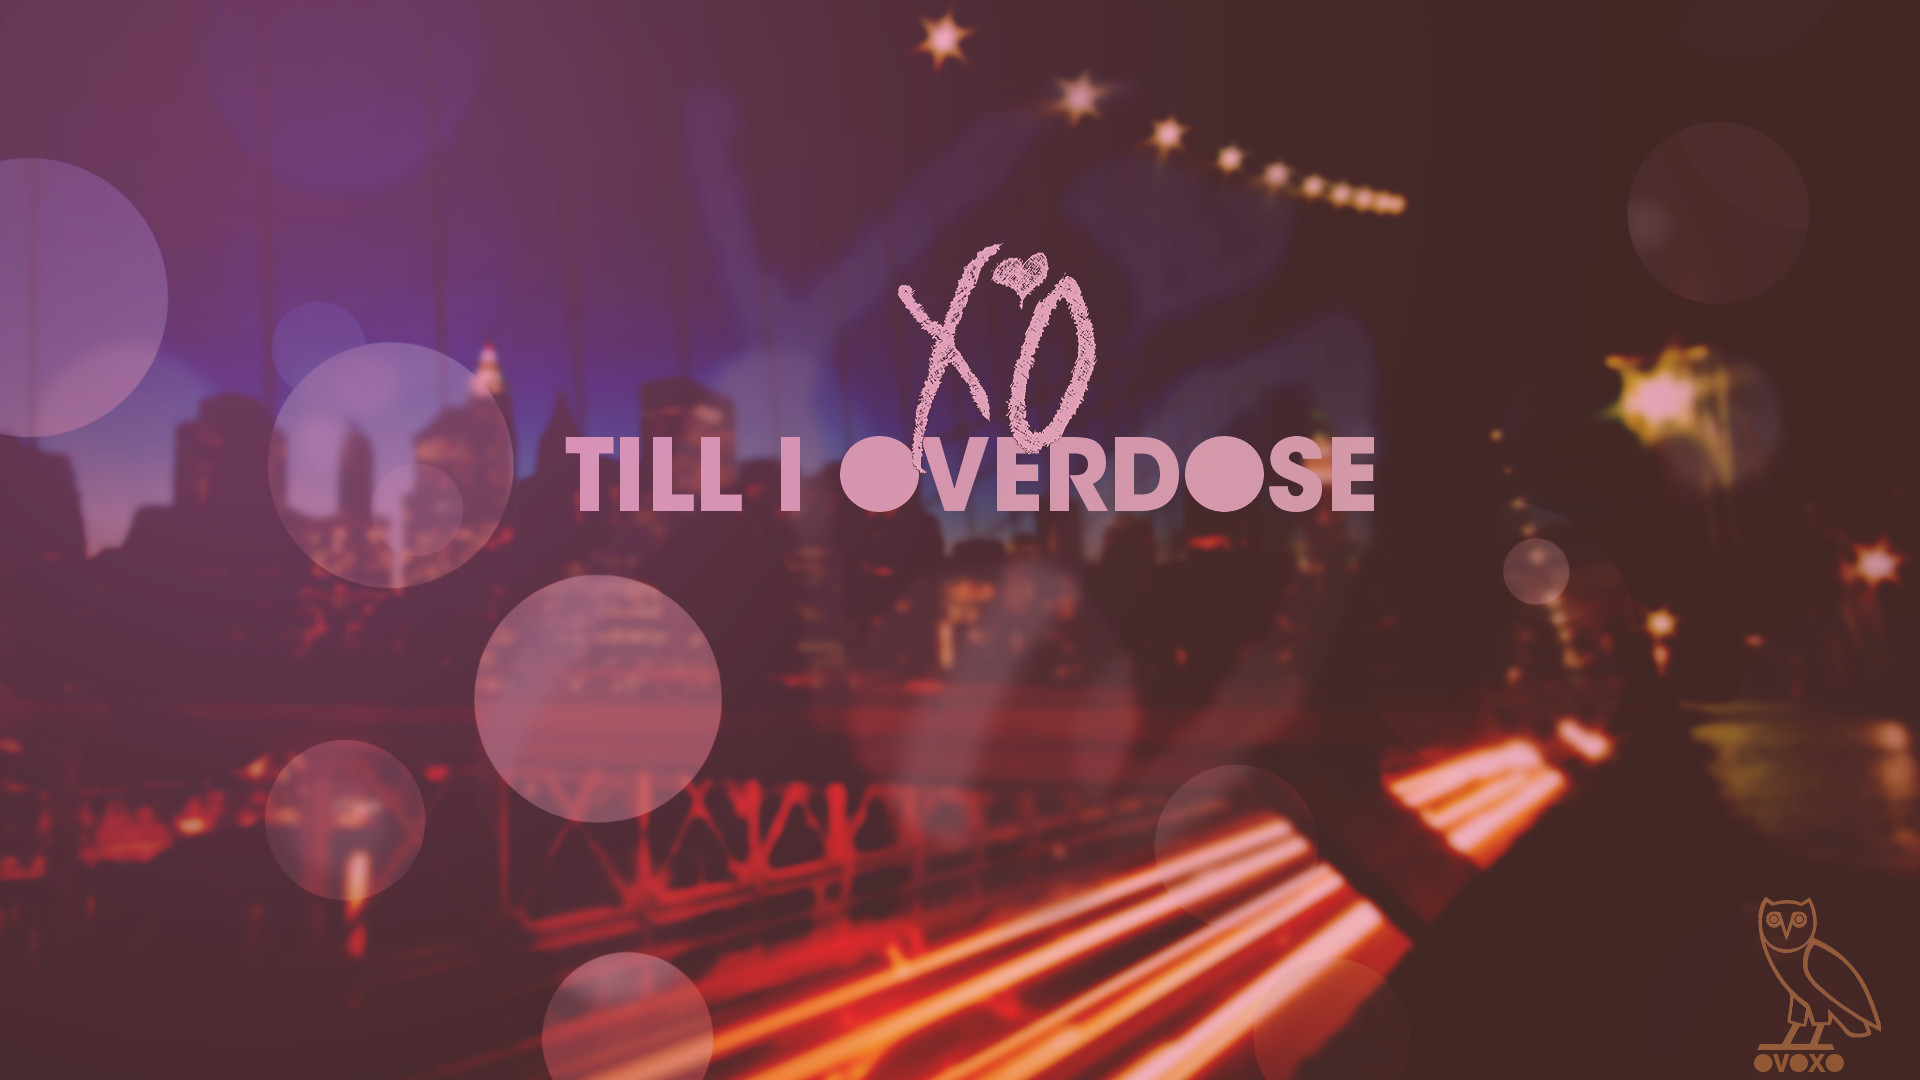 The Weeknd Till I Overdose Xo • Rap Wallpapers